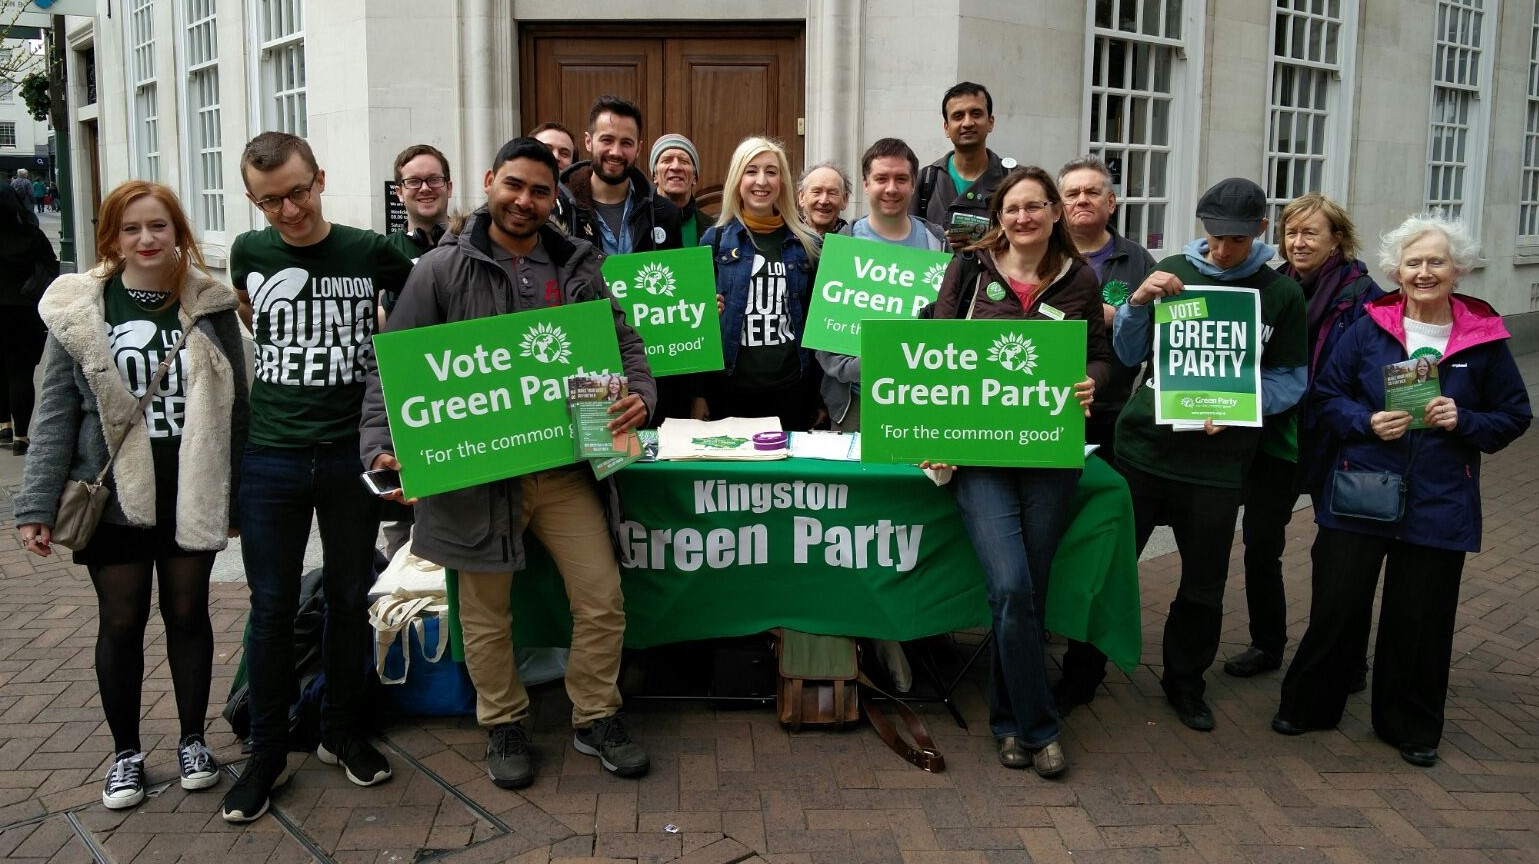 Kingston Green Party is one of the two local parties involved